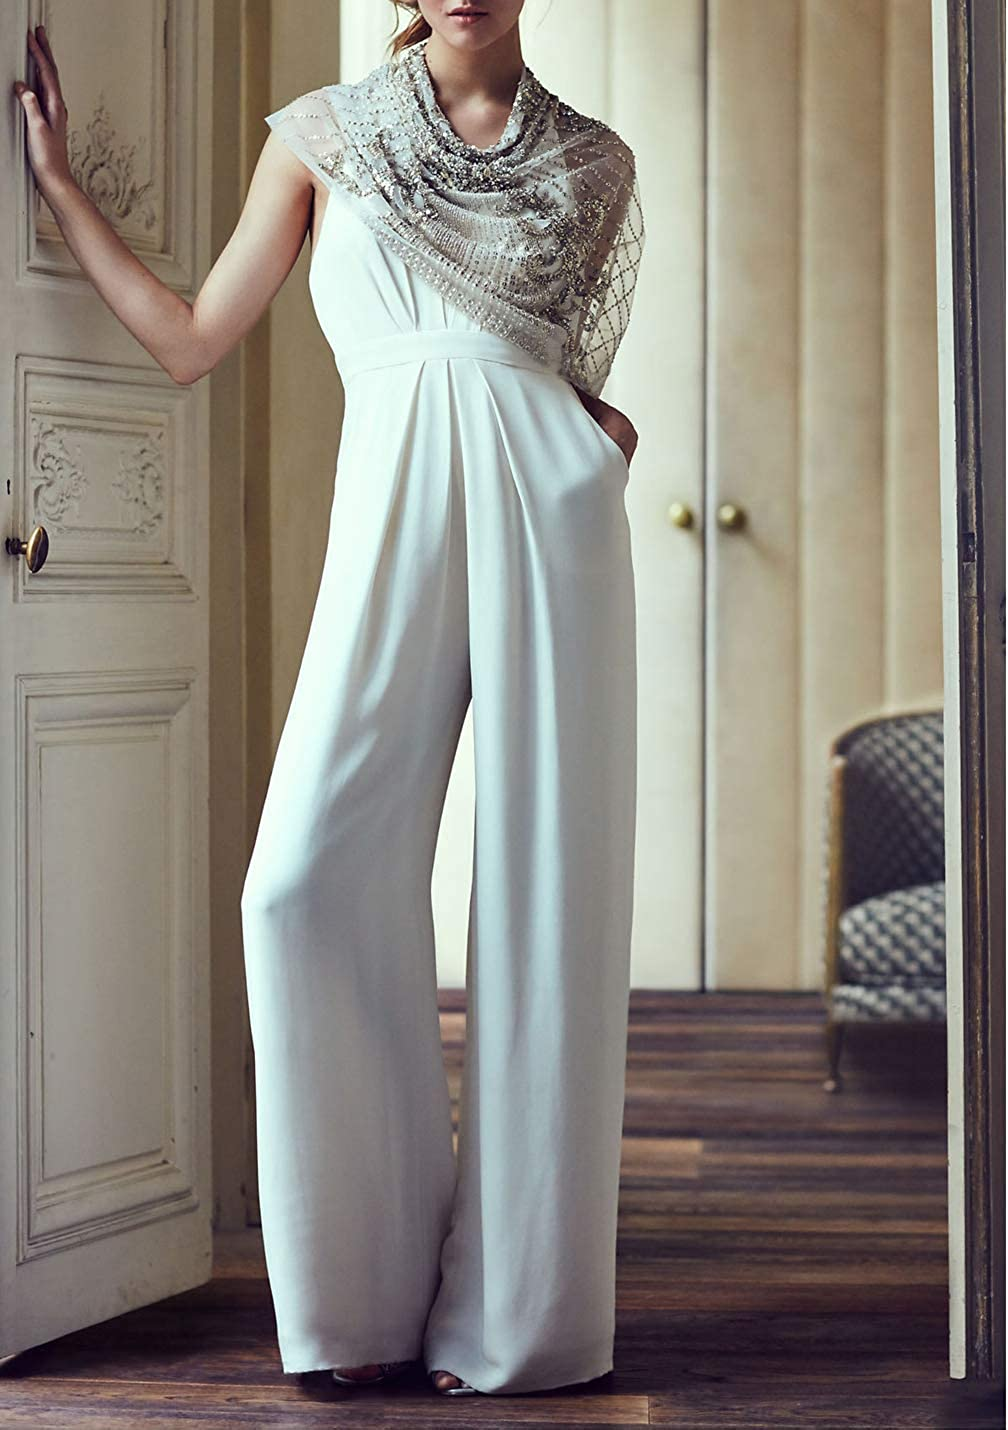 Women Jumpsuits Rompers Halter Backless High Waisted Palazzo Pants Playsuit